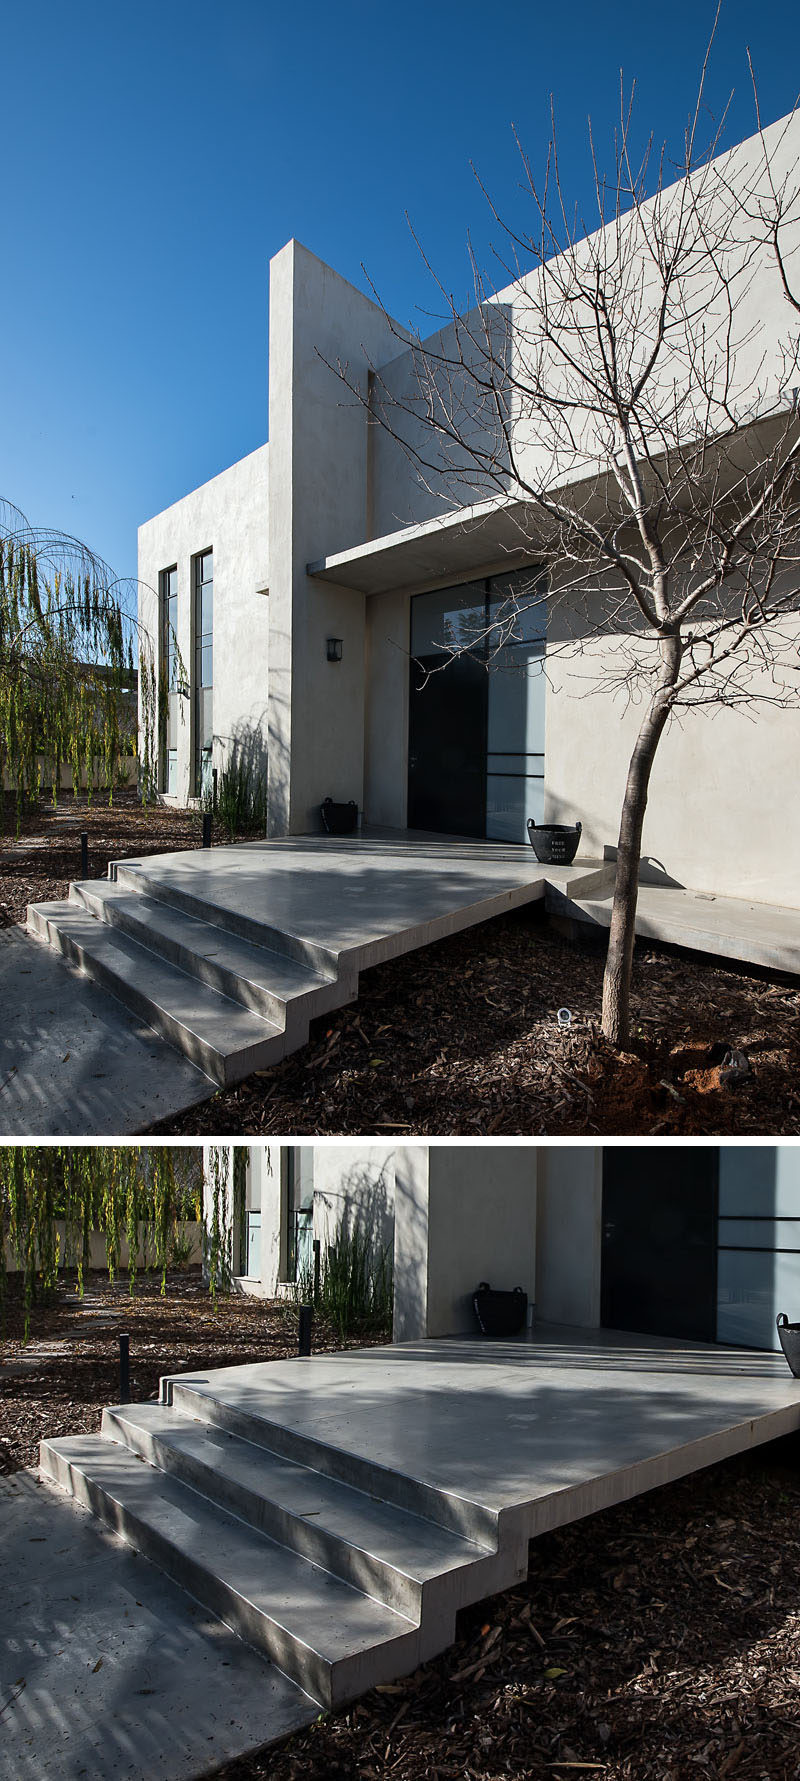 At the front of this home, tree bark covers the ground to enhance the concrete strip and stairs leading you to the front door.